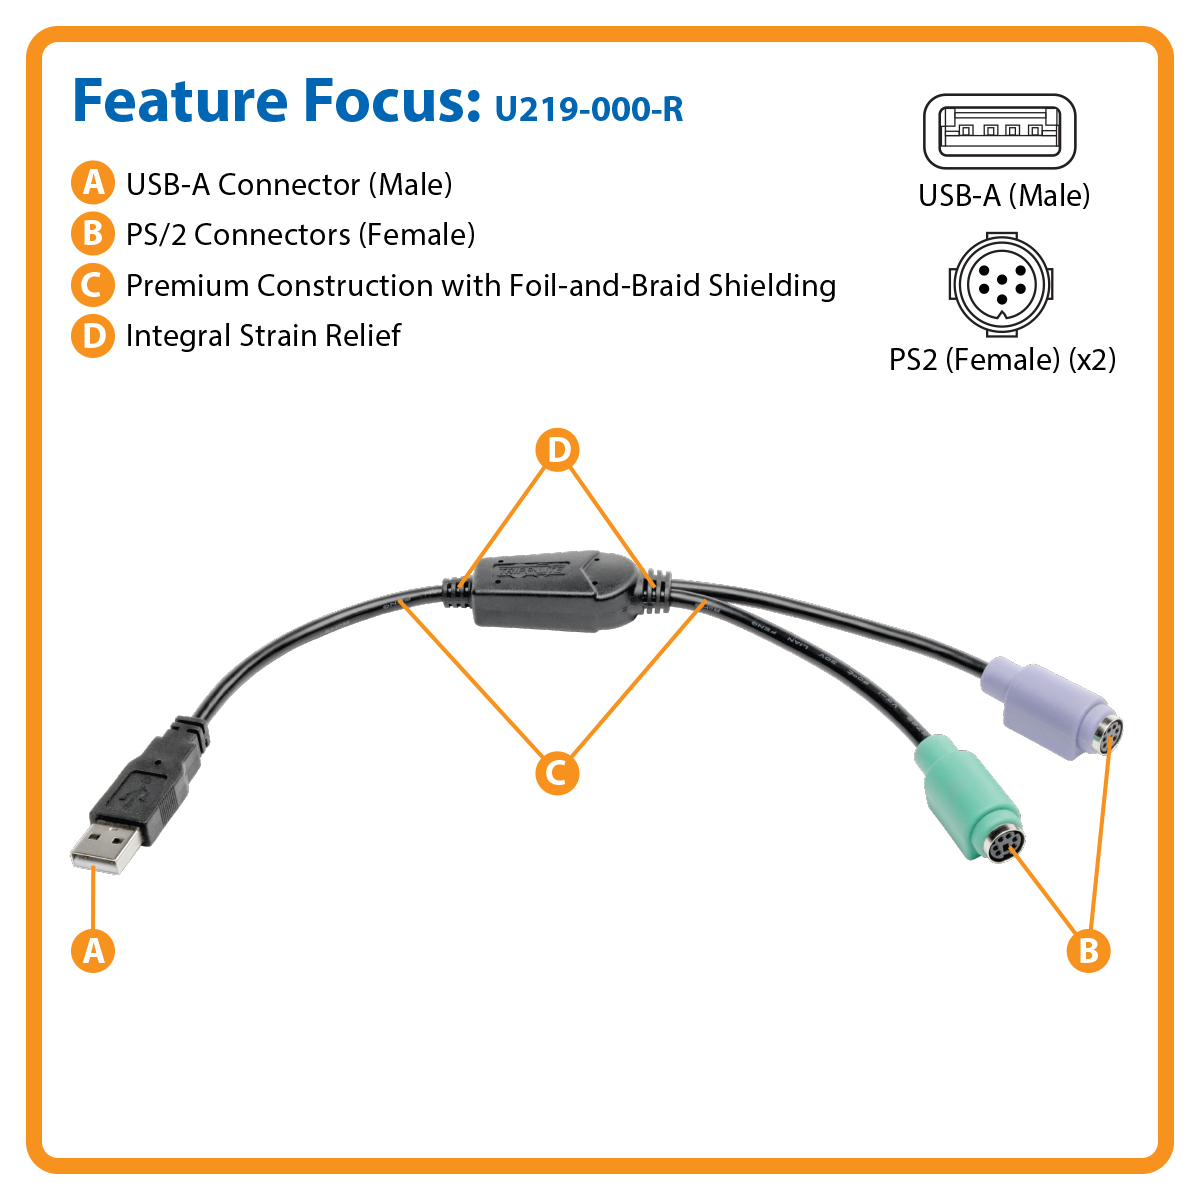 Tripp Lite 6 Inch Usb To Ps2 Adapter Keyboard And Mouse Usb A O 2X - Ra-Track-B-2-Usb-Ps2 Wiring Diagram